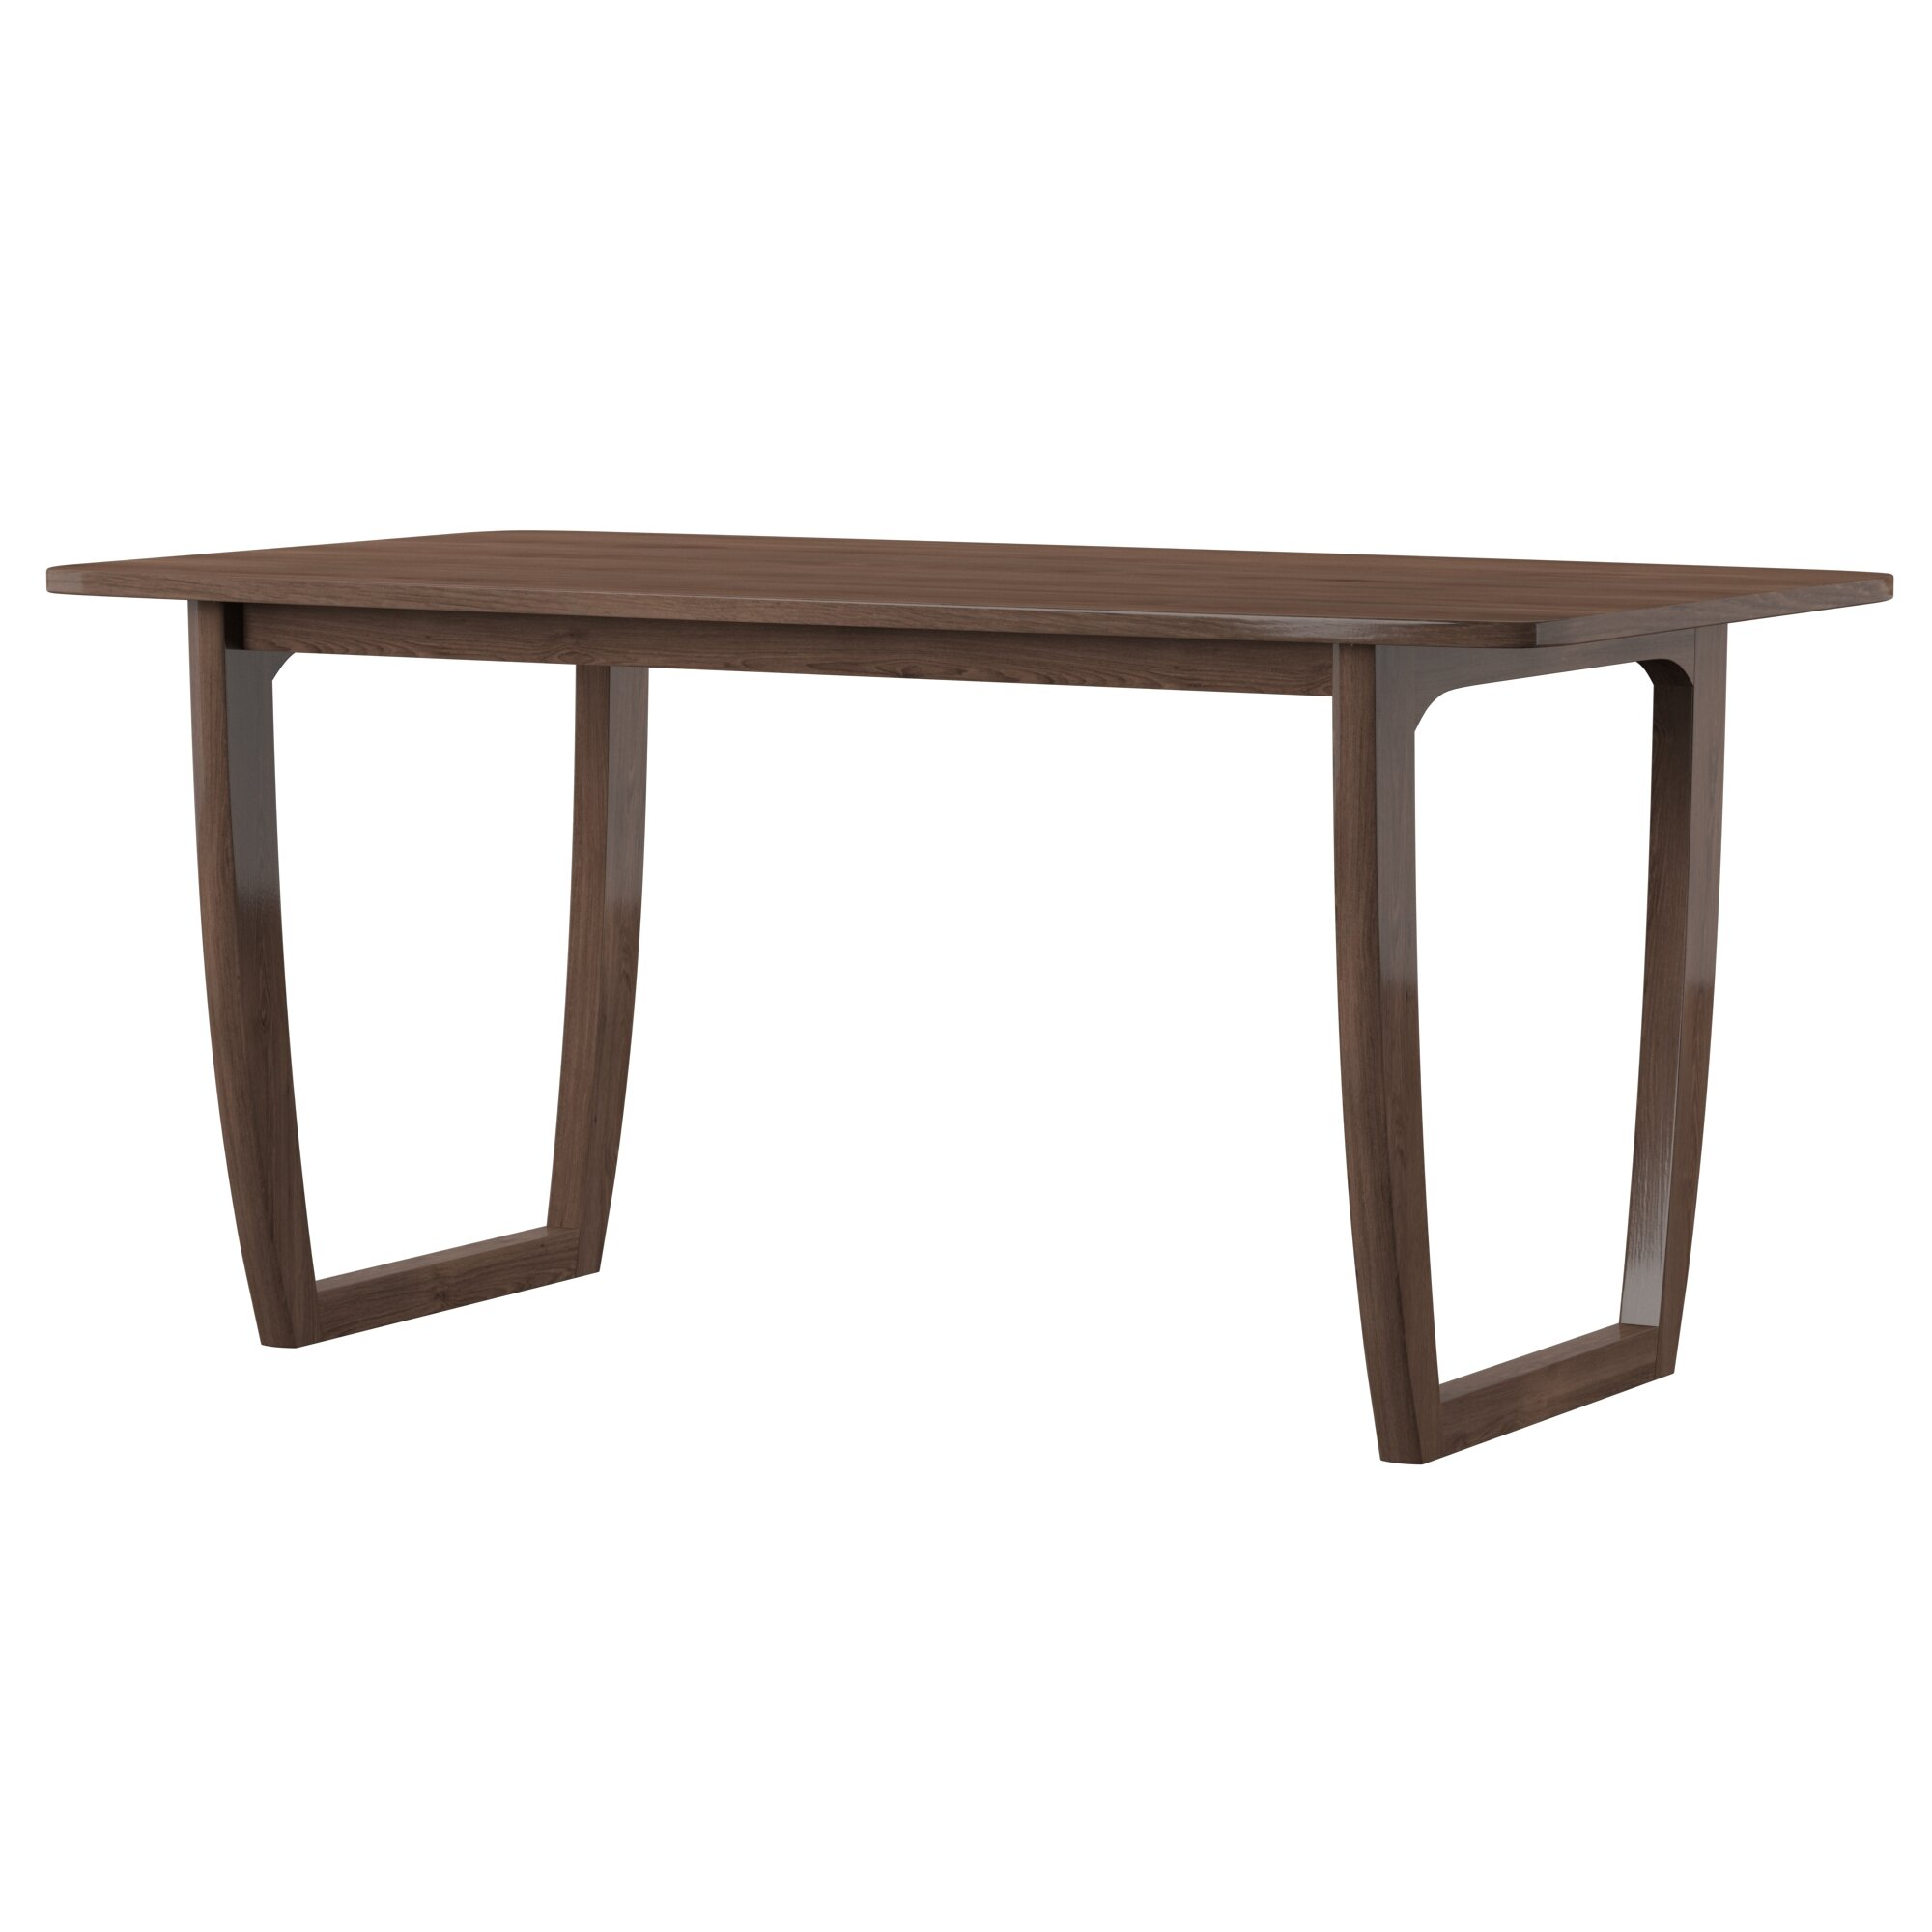 Amazing Mukai Dining Table Unemploymentrelief Wooden Chair Designs For Living Room Unemploymentrelieforg